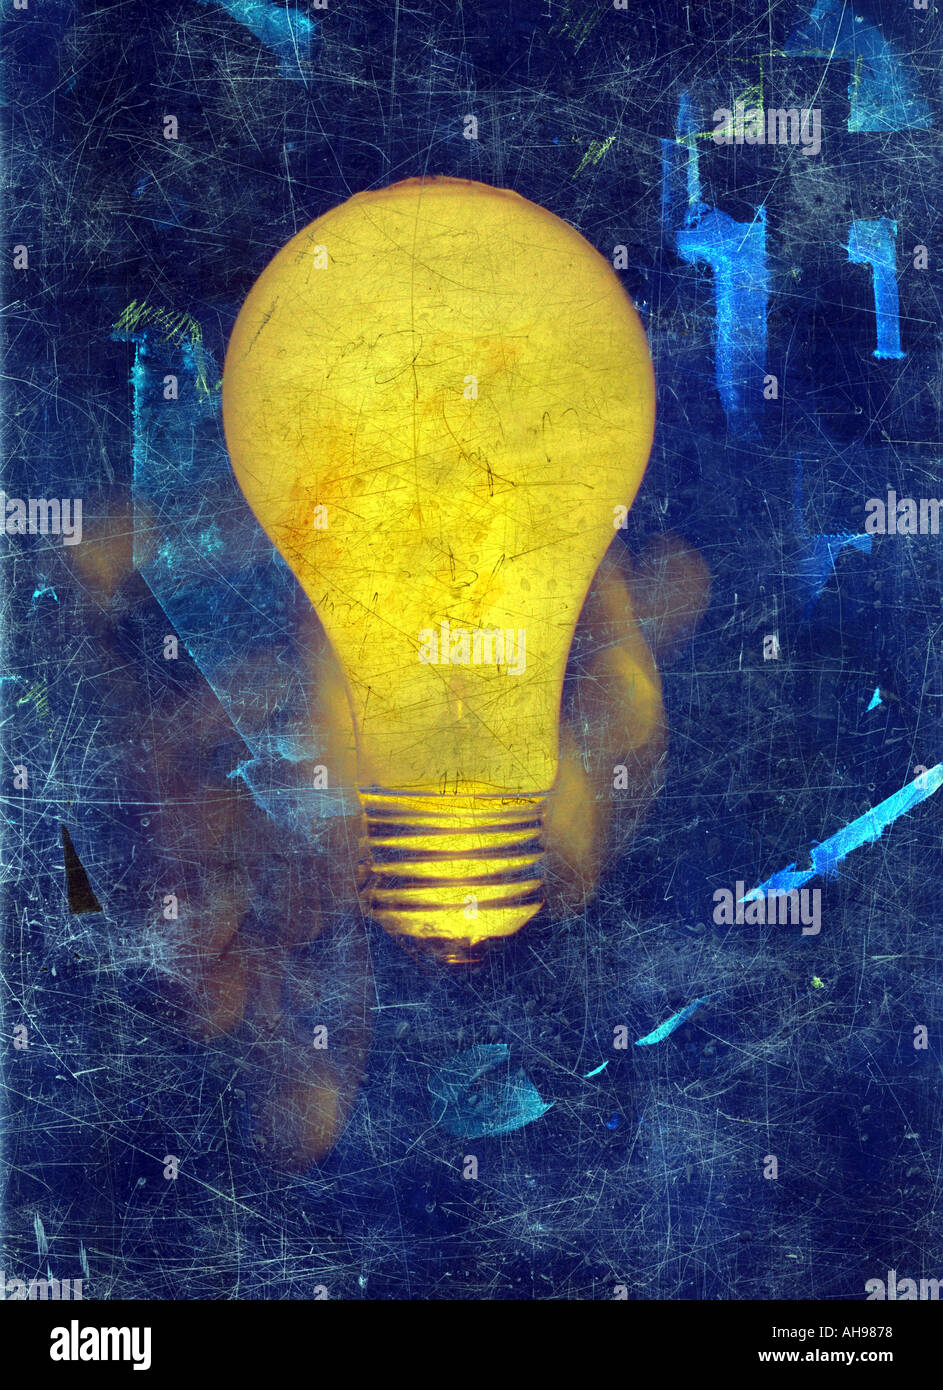 Illustration light bulb idea painting - Stock Image